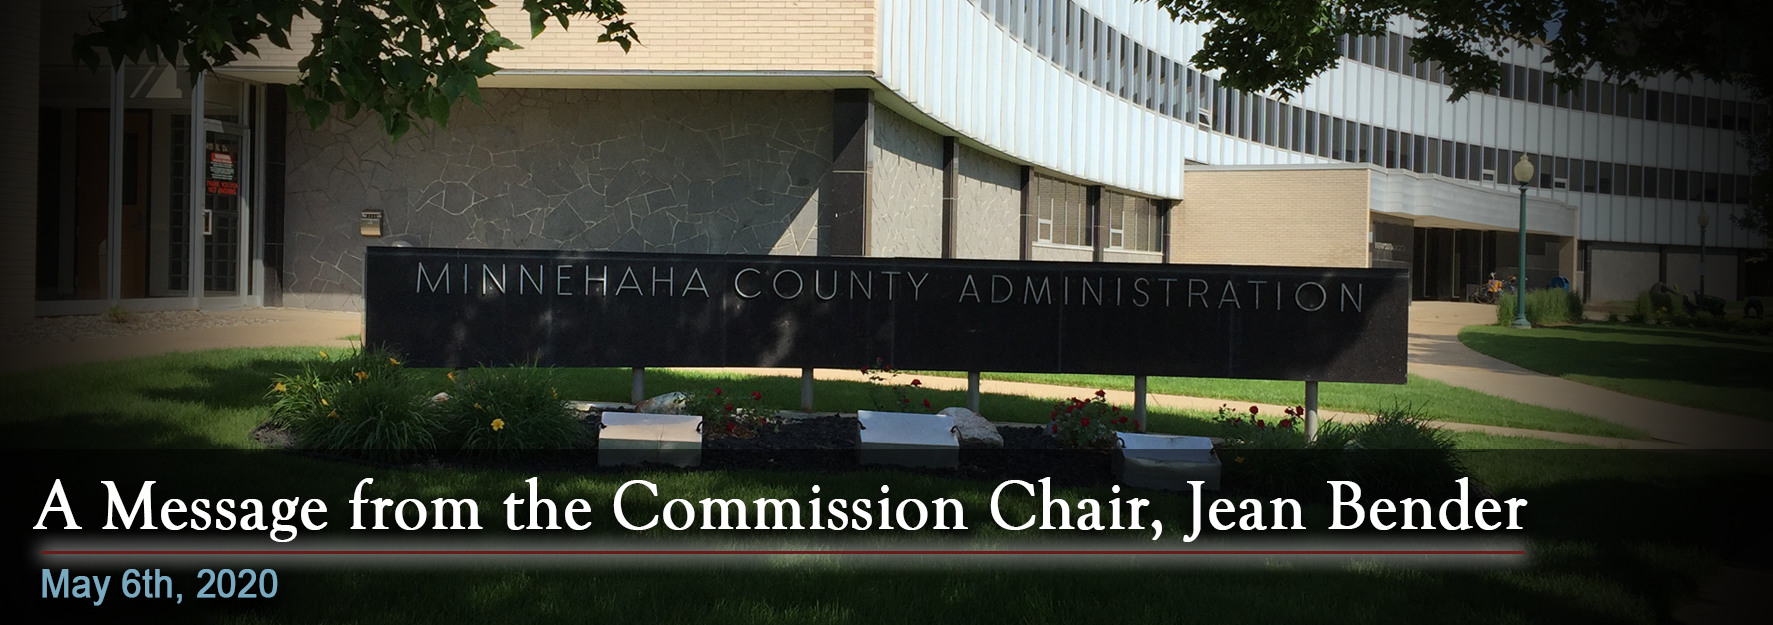 A Message From the Commission Chair, Jean Bender